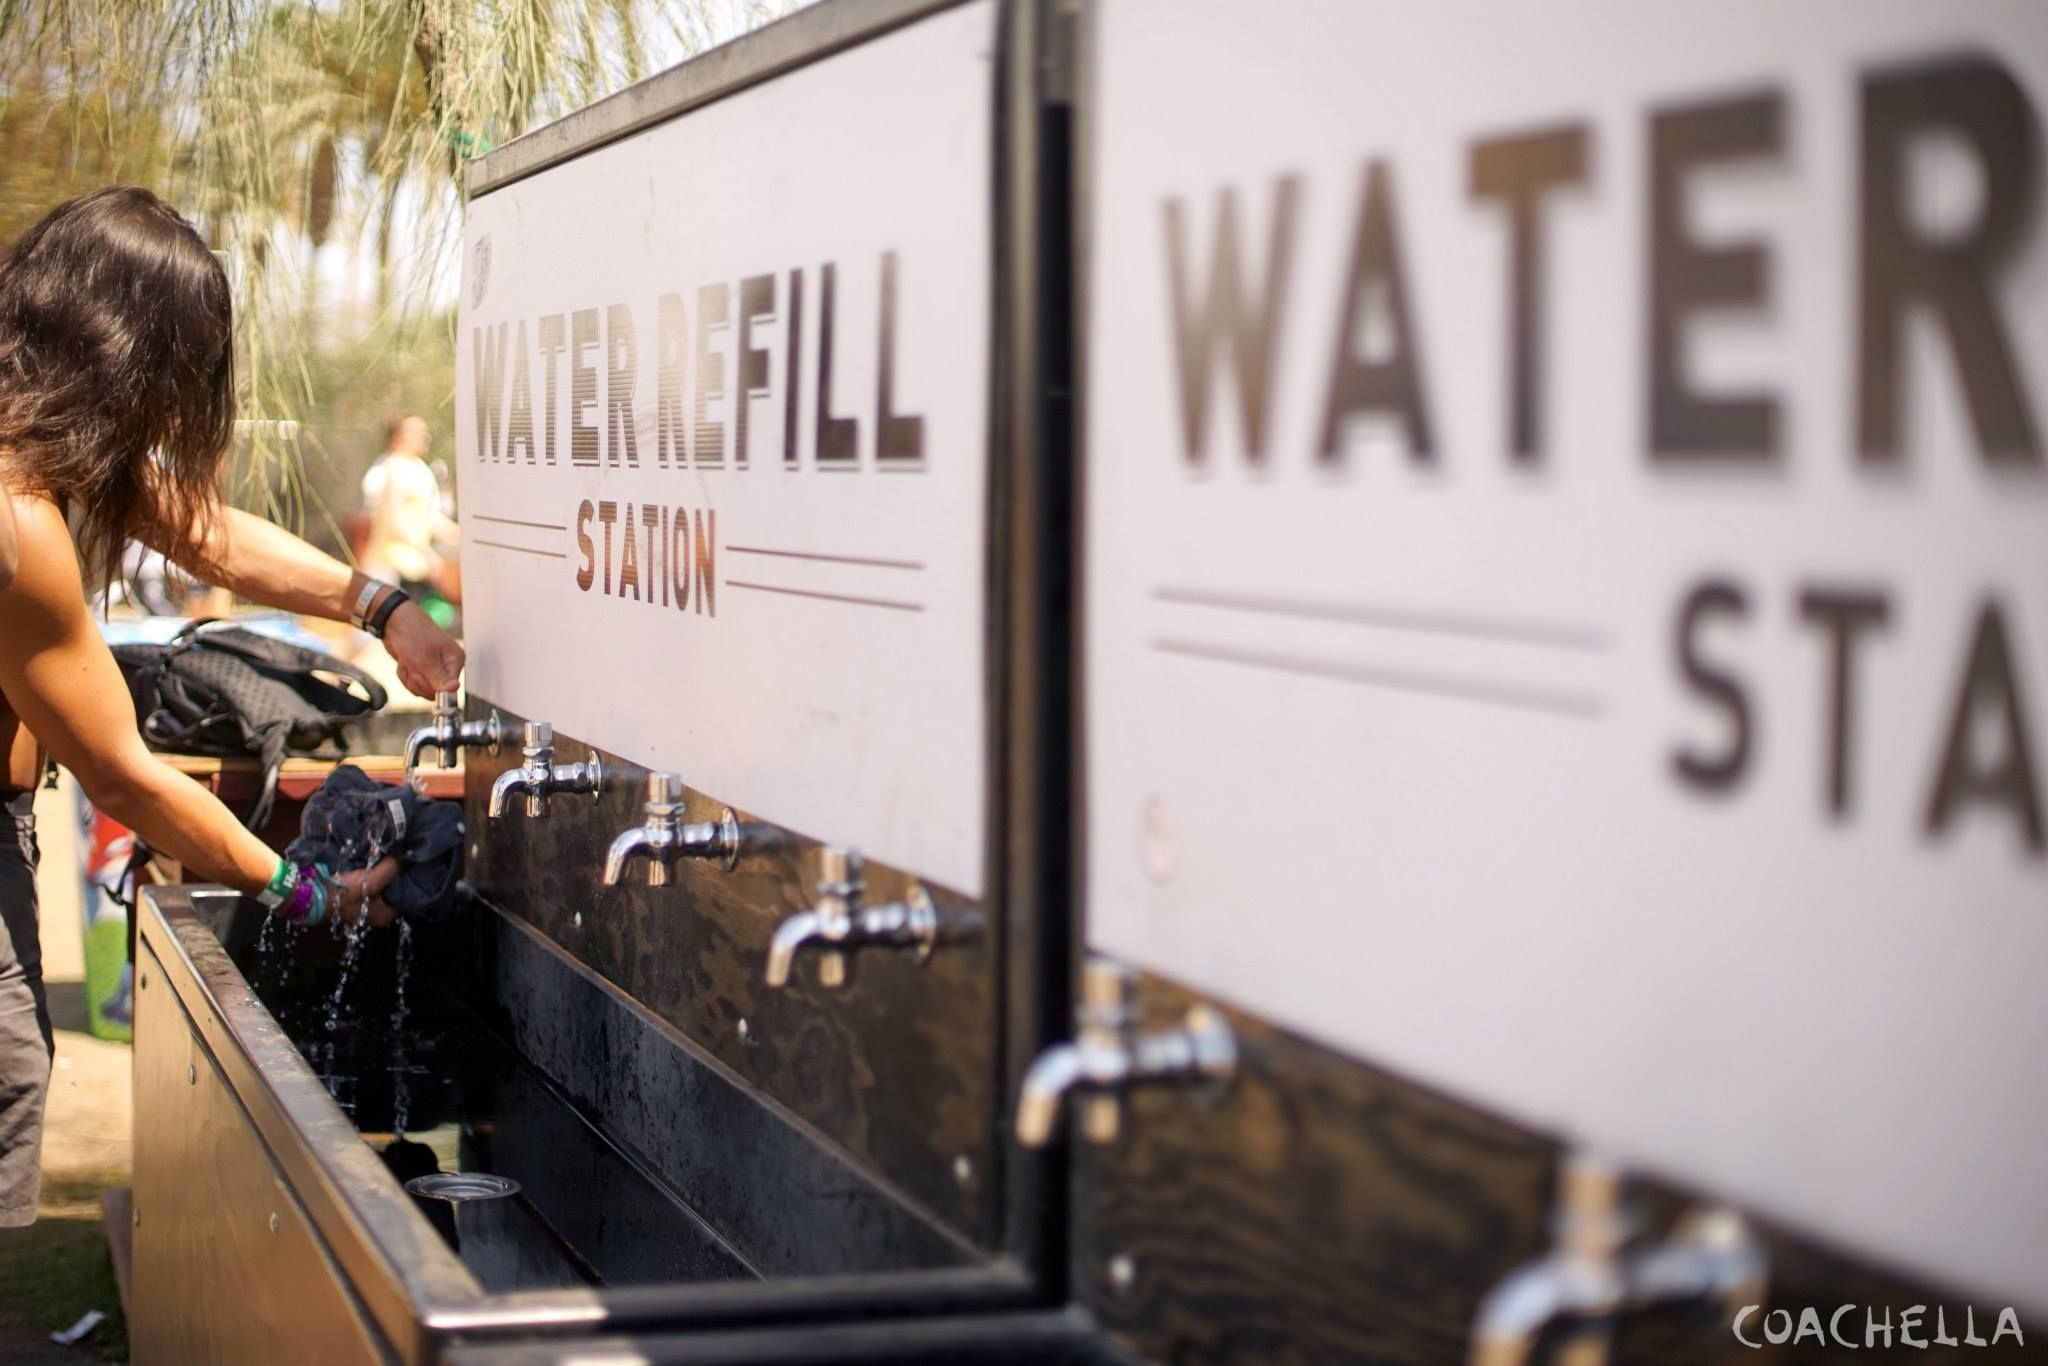 Coachella // Press // Environment // Water Refill Stations